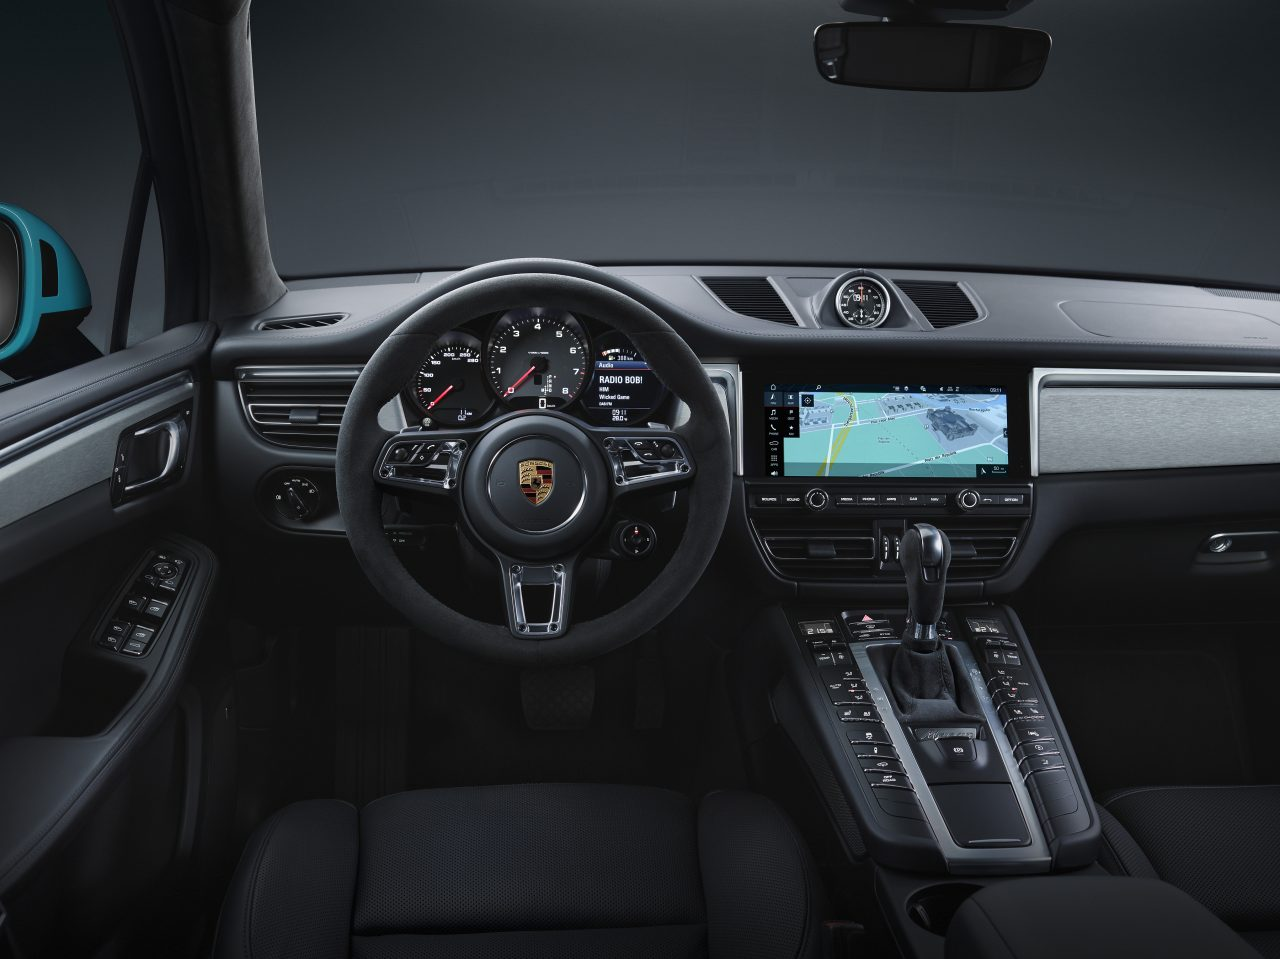 2019 Porsche Macan interior photo